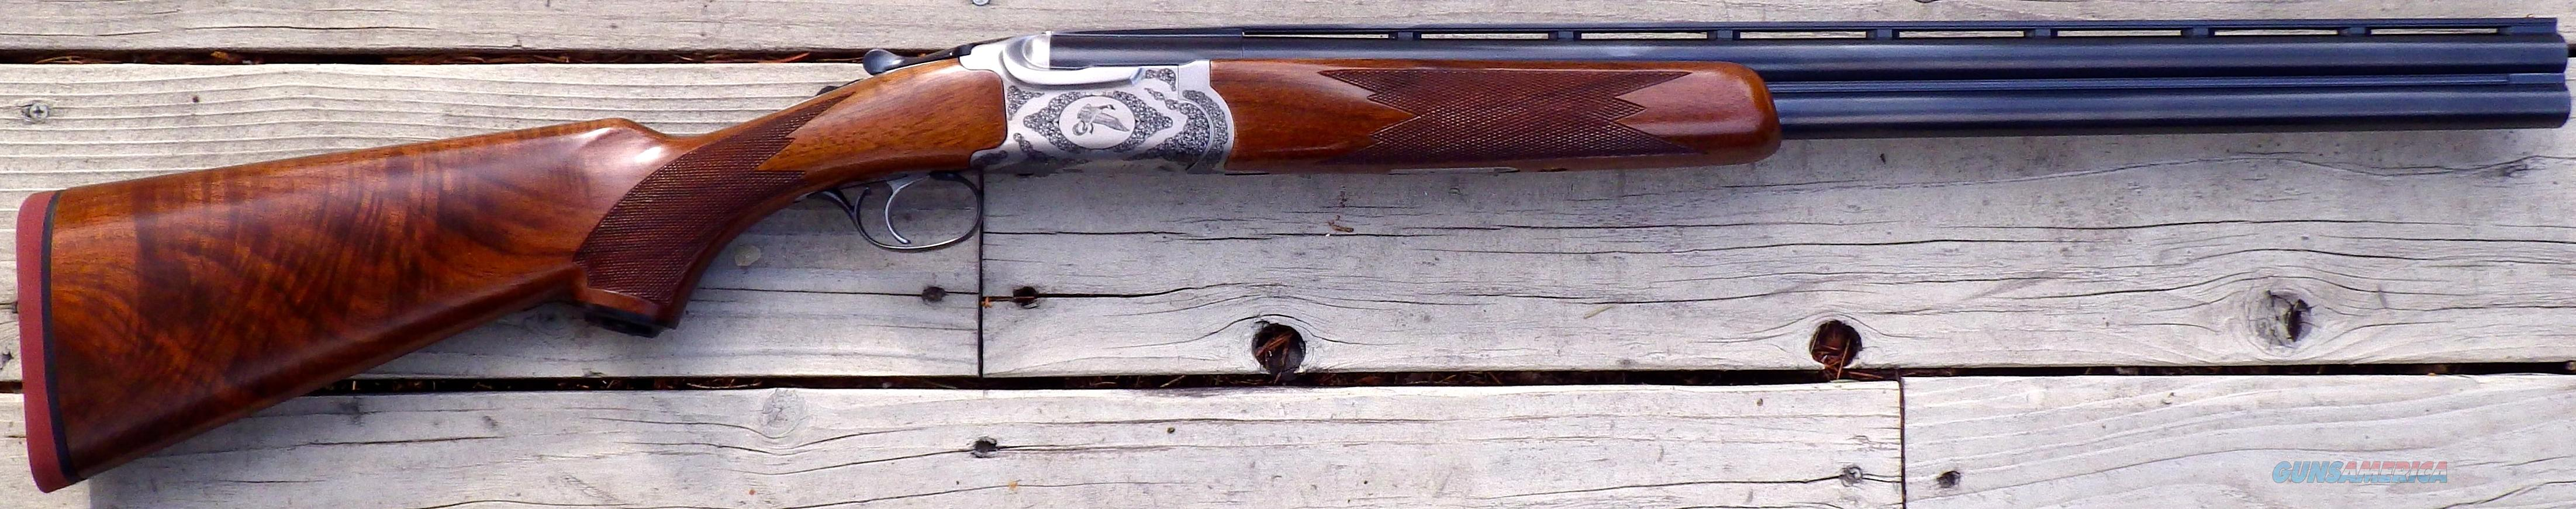 Ruger Red Label 12, 1986, NIB, engraved by master Robert Strosin  Guns > Shotguns > Ruger Shotguns > Hunting